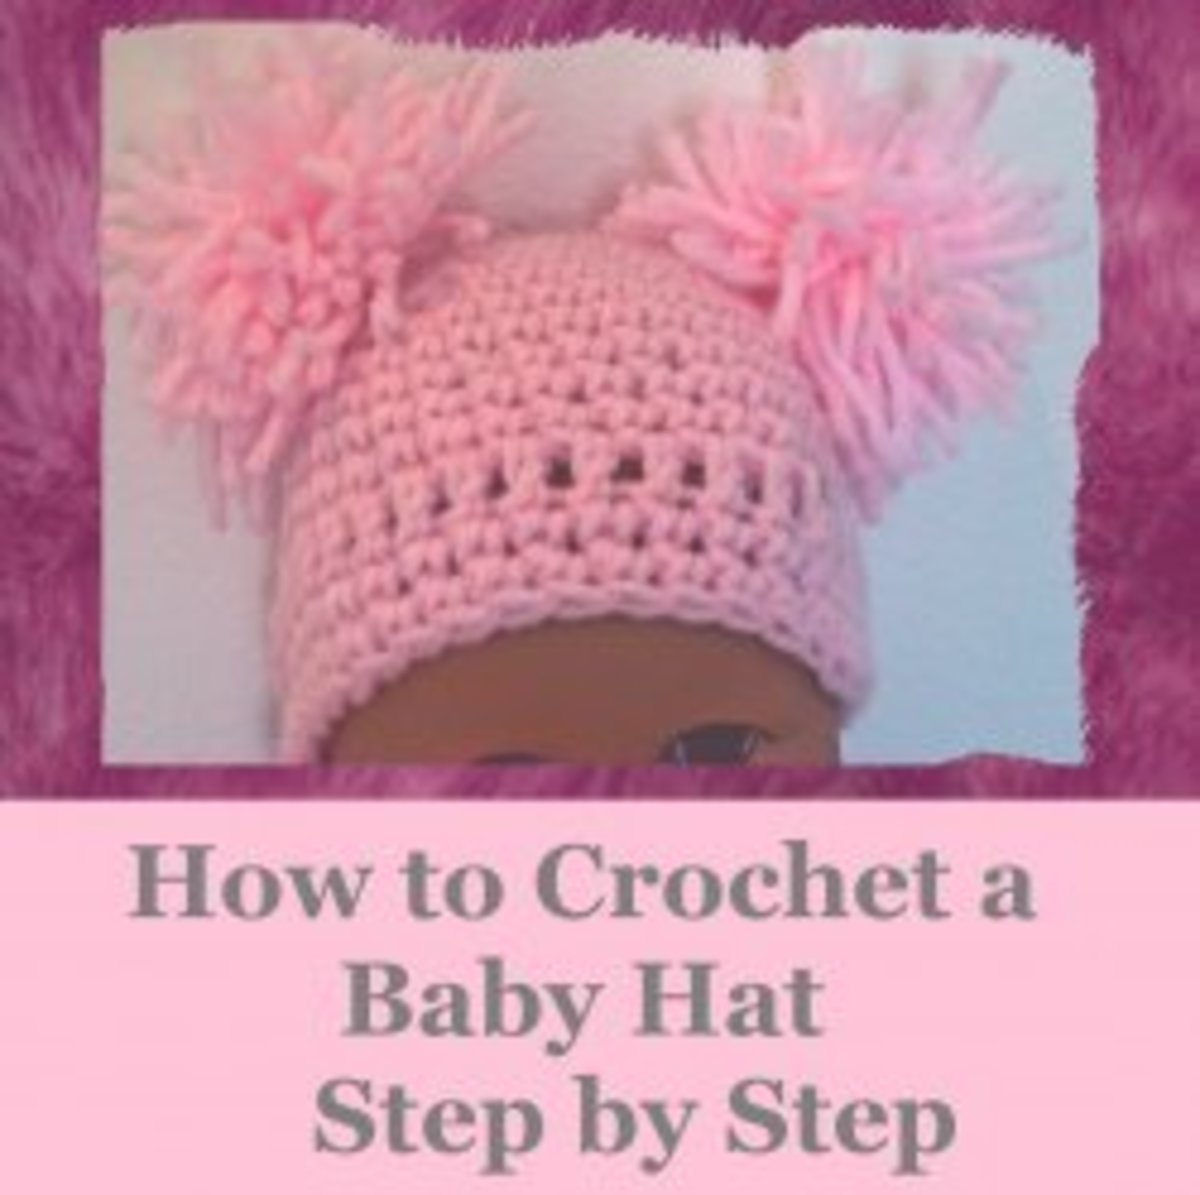 Crochet Patterns Step By Step : How To Crochet A Baby Hat Ideal for Beginners {With Step ...